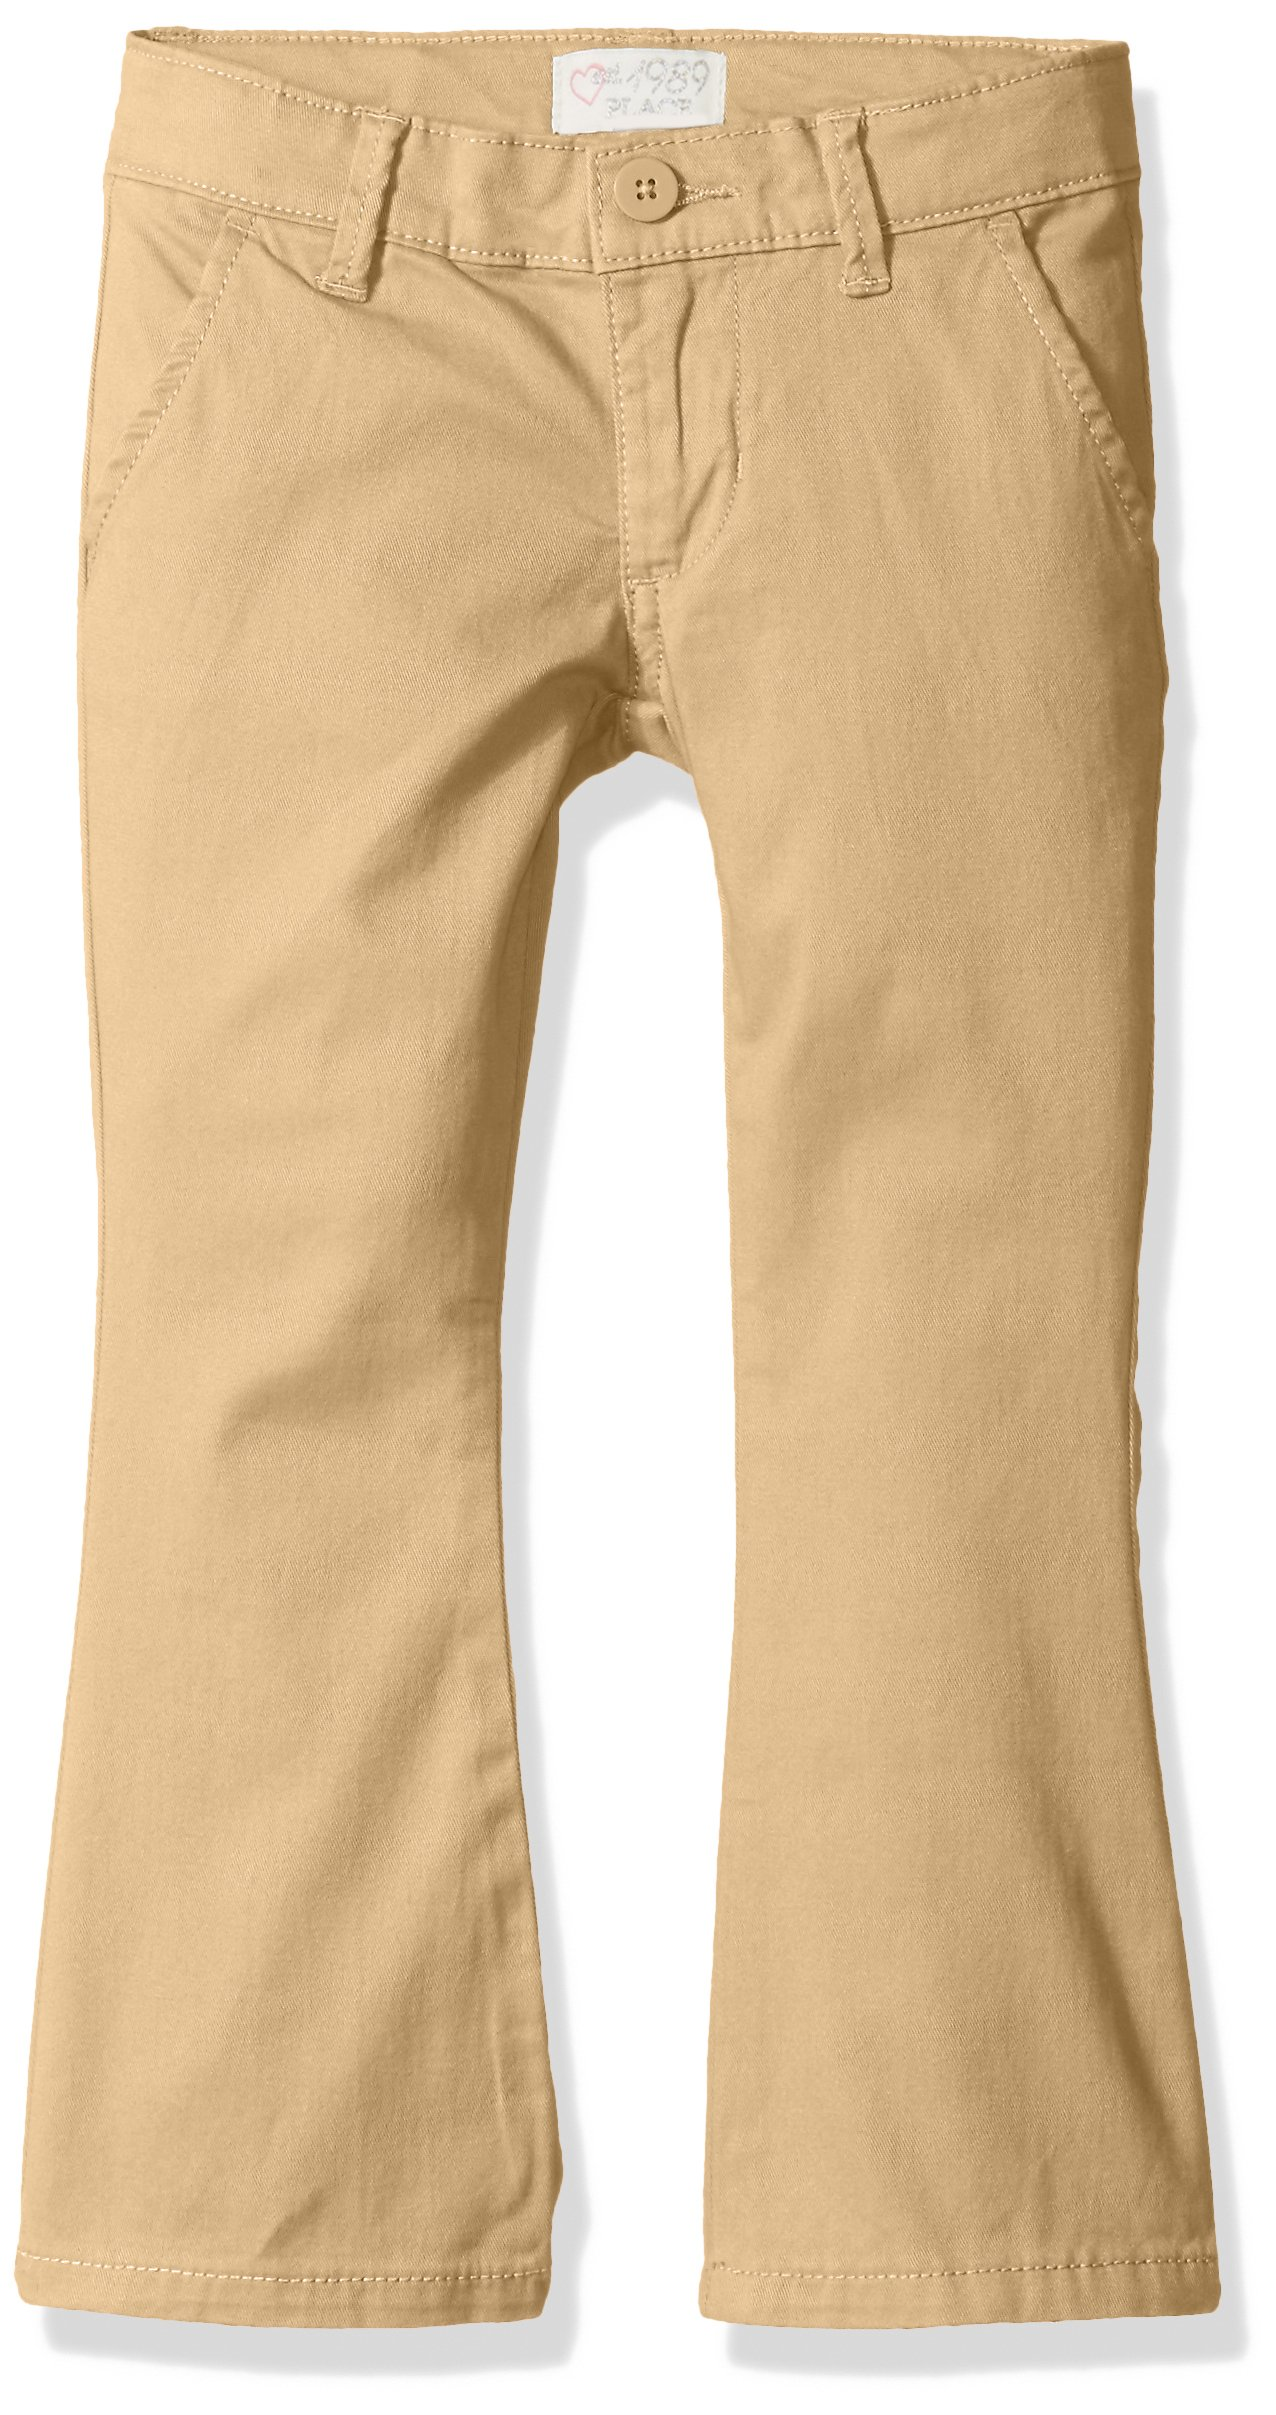 The Children's Place Girls Size Uniform Pants, Sesame 44403, 6X/7 Slim